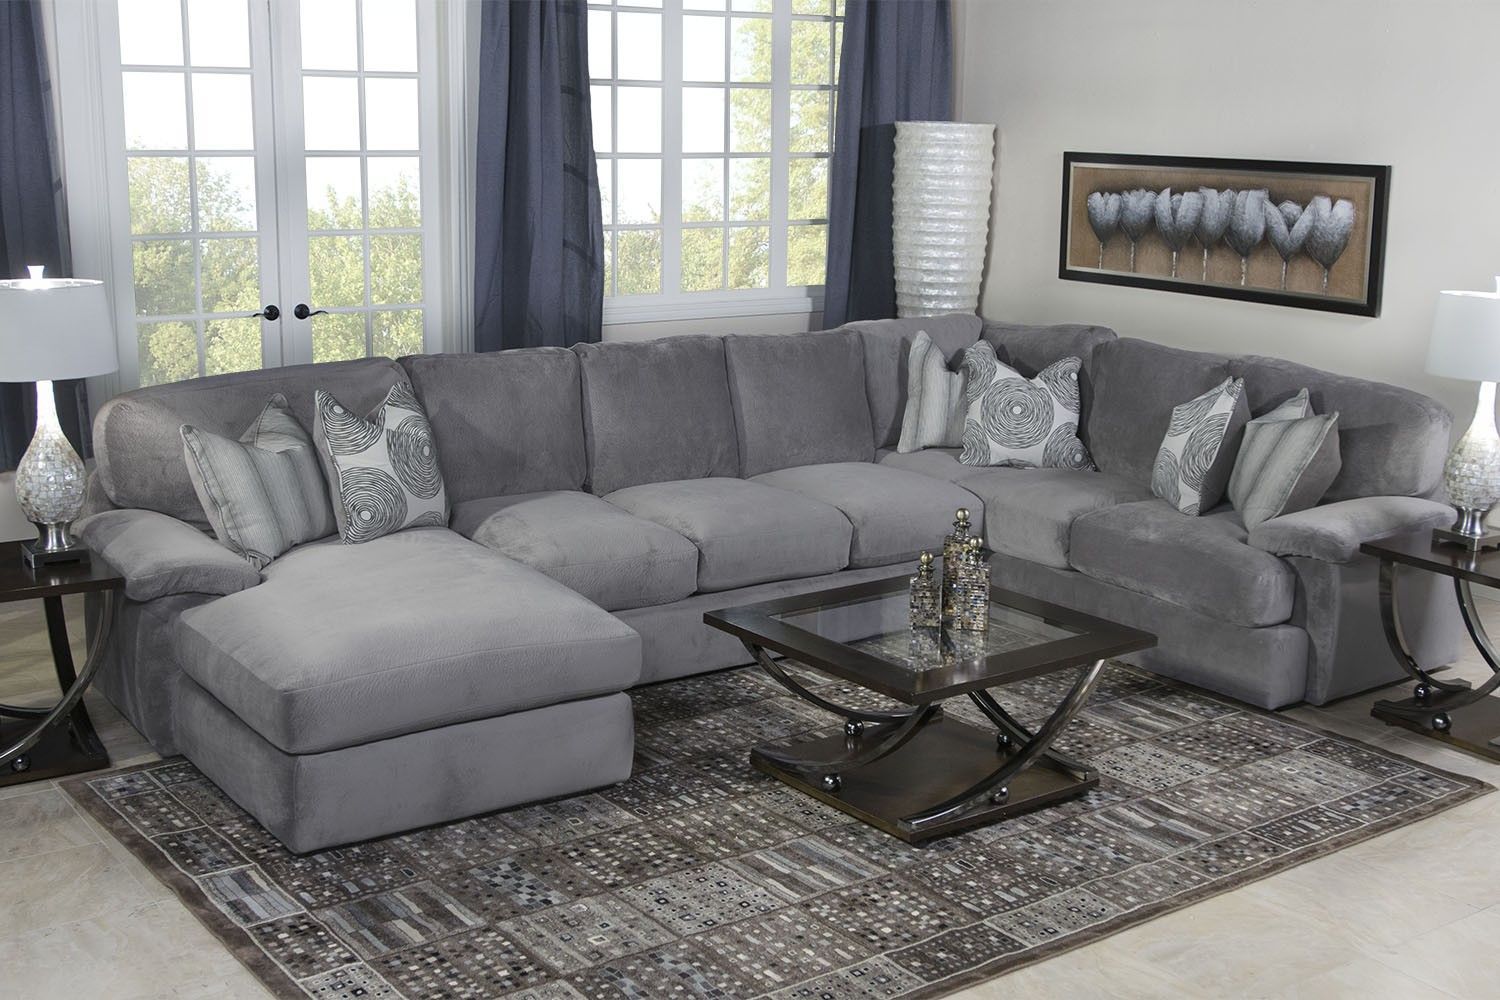 Key west sectional living room in gray living room mor for Sectional sofas mor furniture